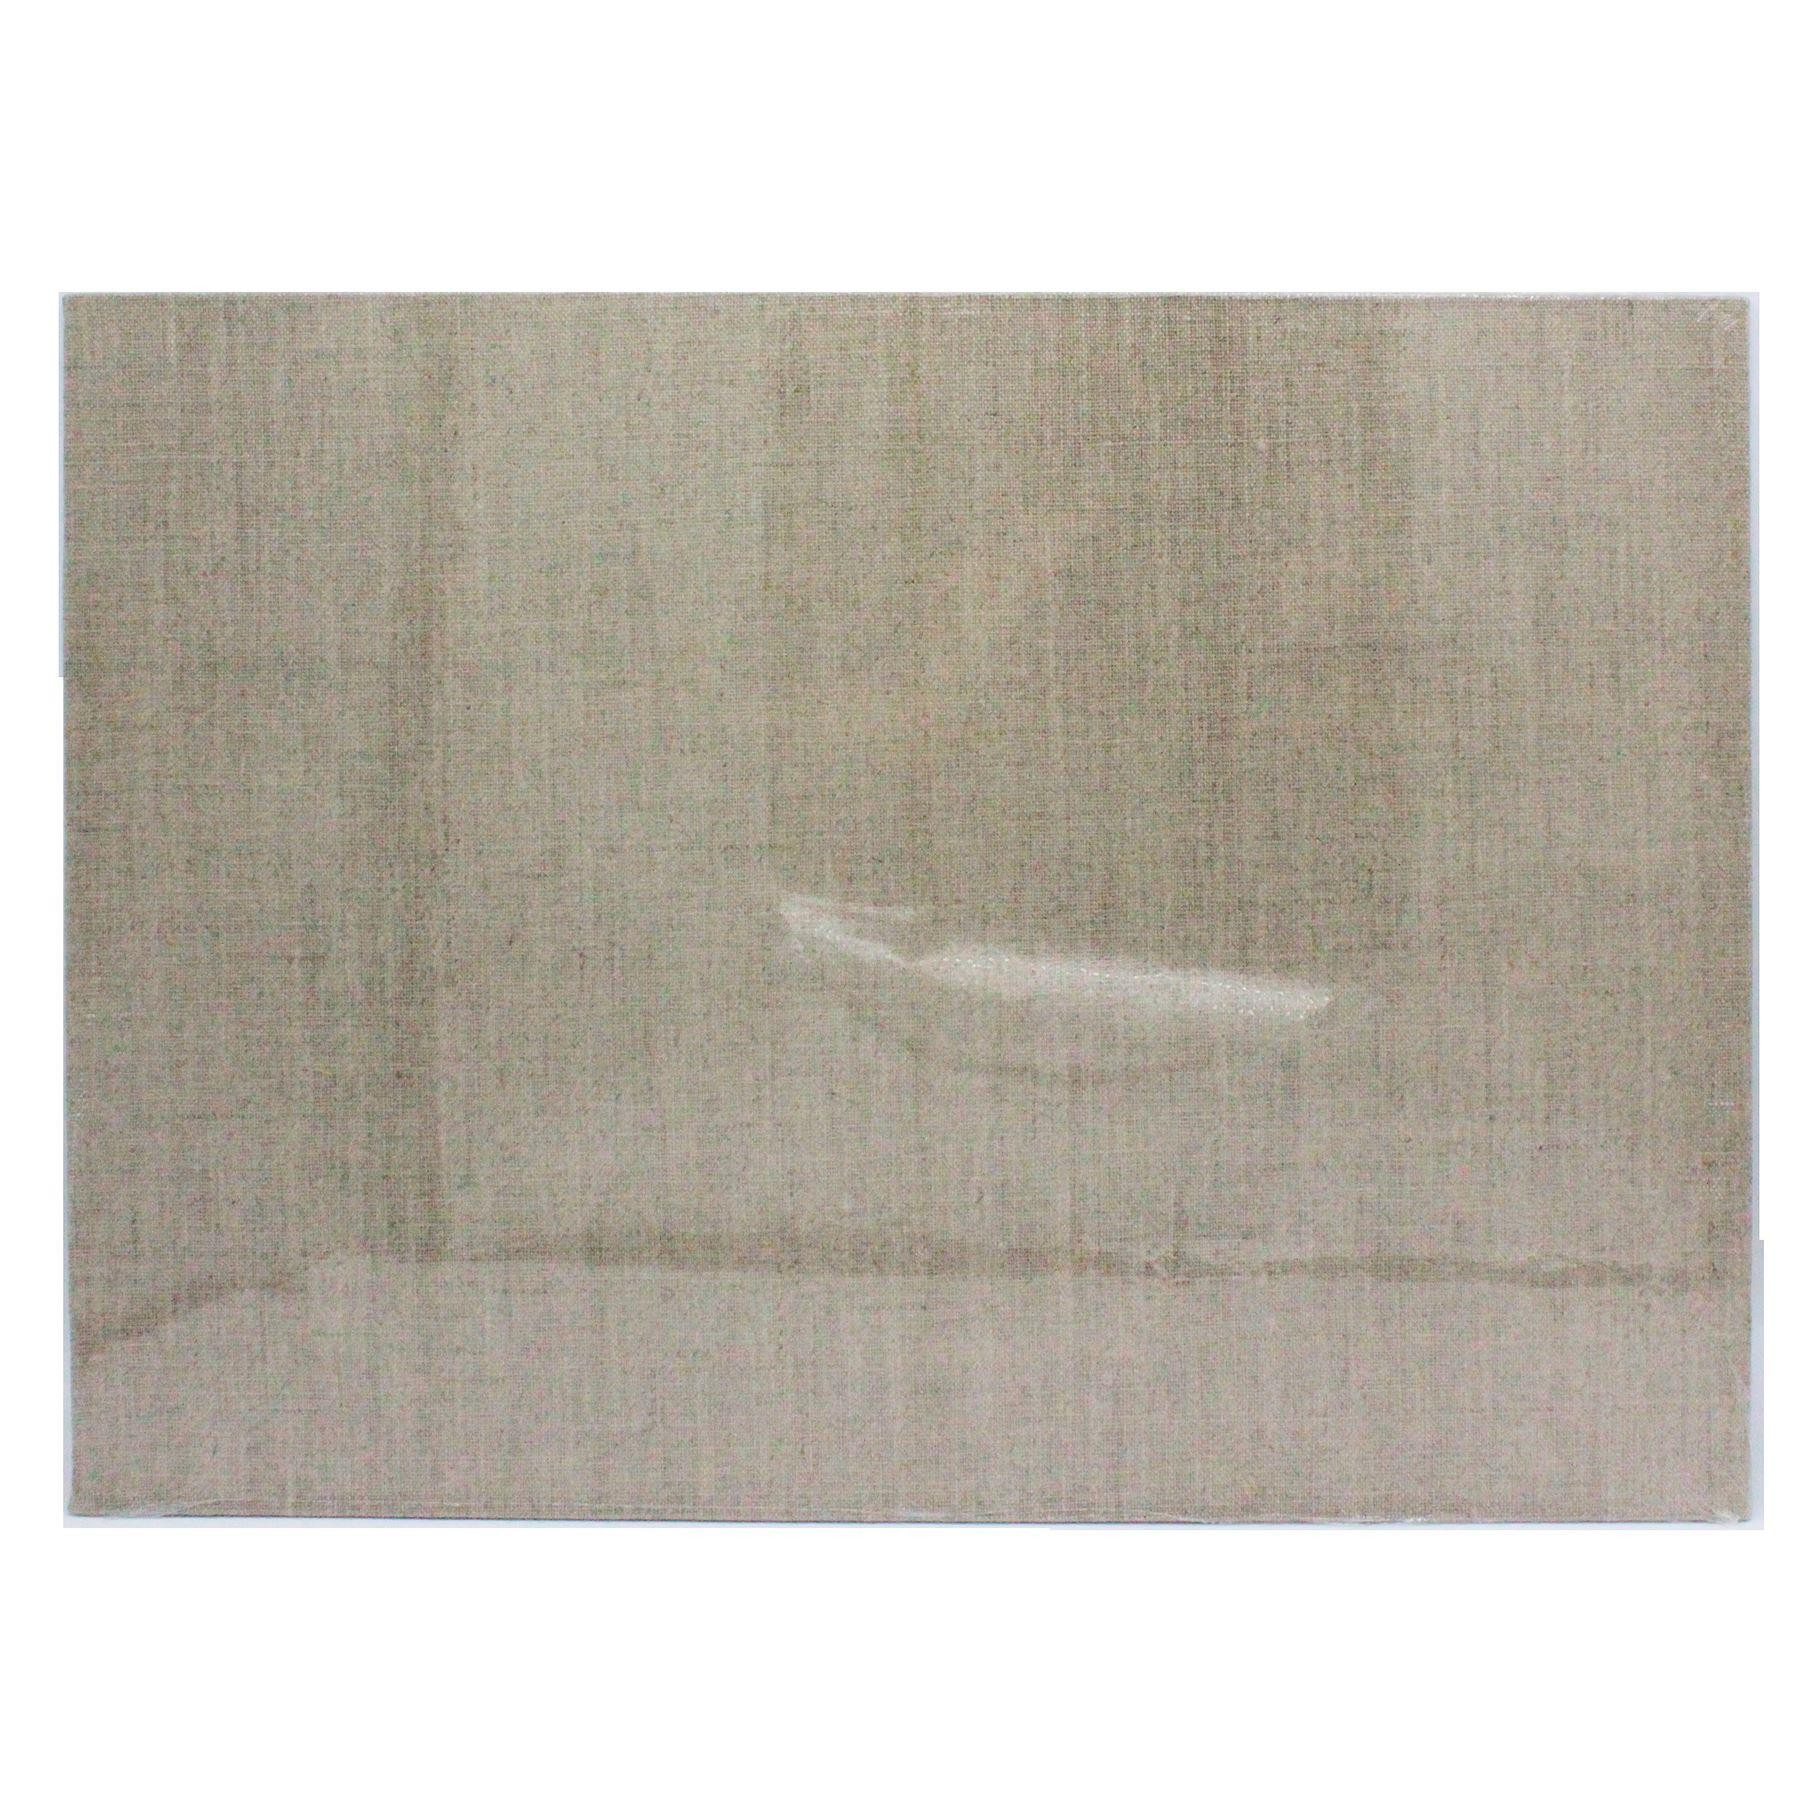 loxley artists lined panel natural linen board 7 x 5